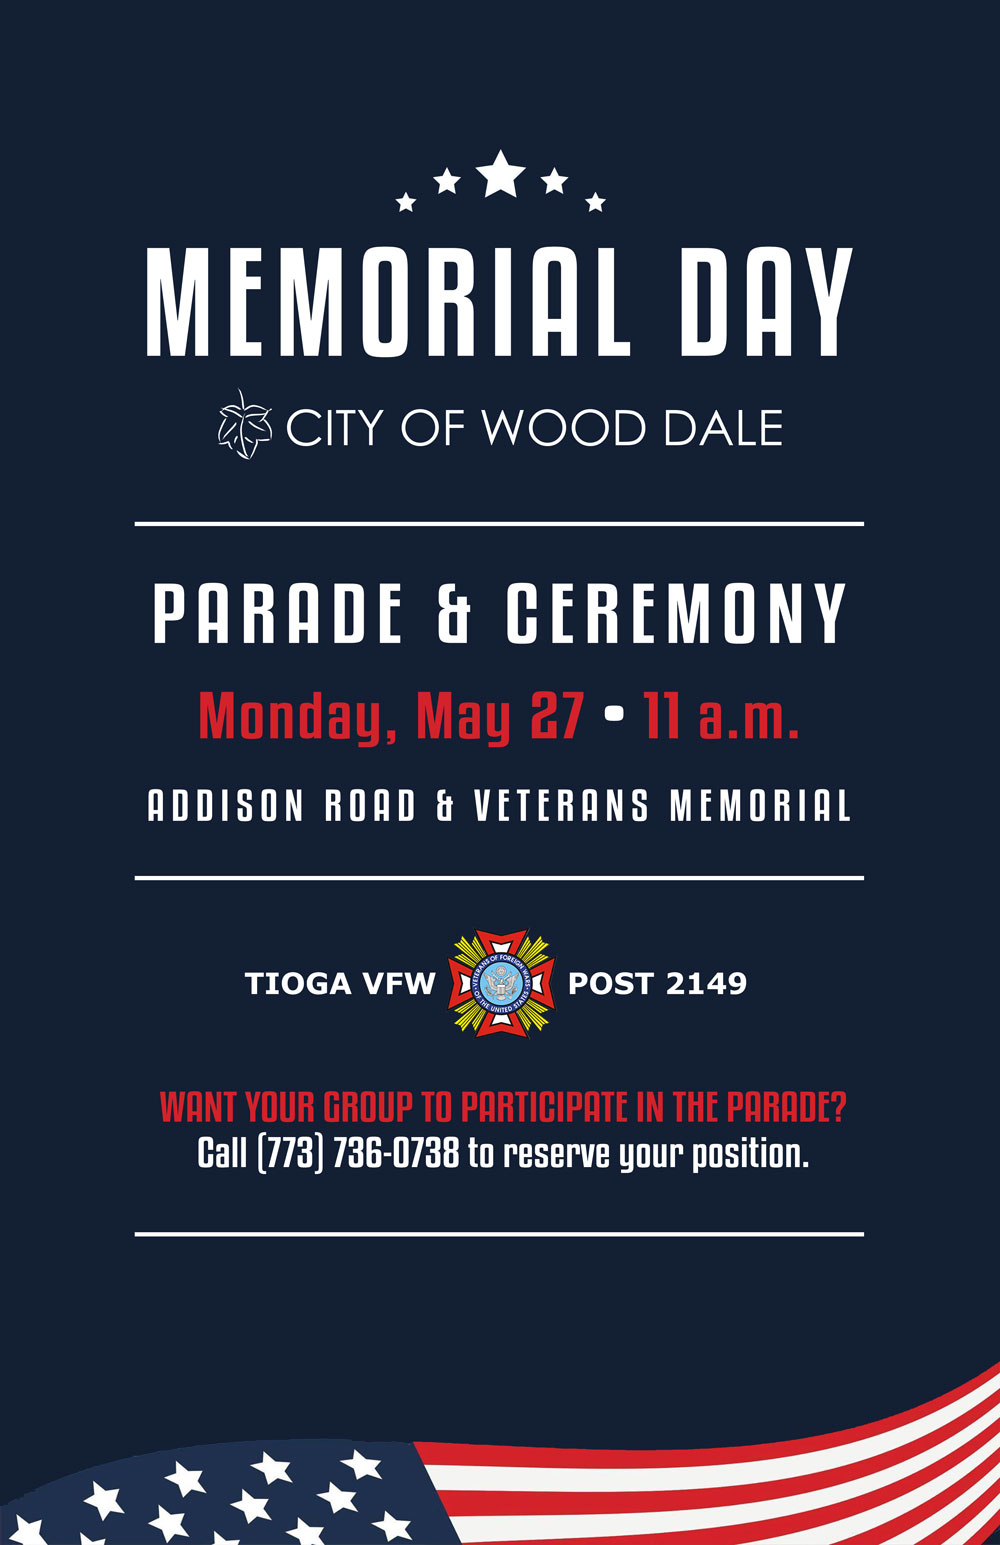 Wooddale Illinois Map.Memorial Day Parade City Of Wood Dale Il